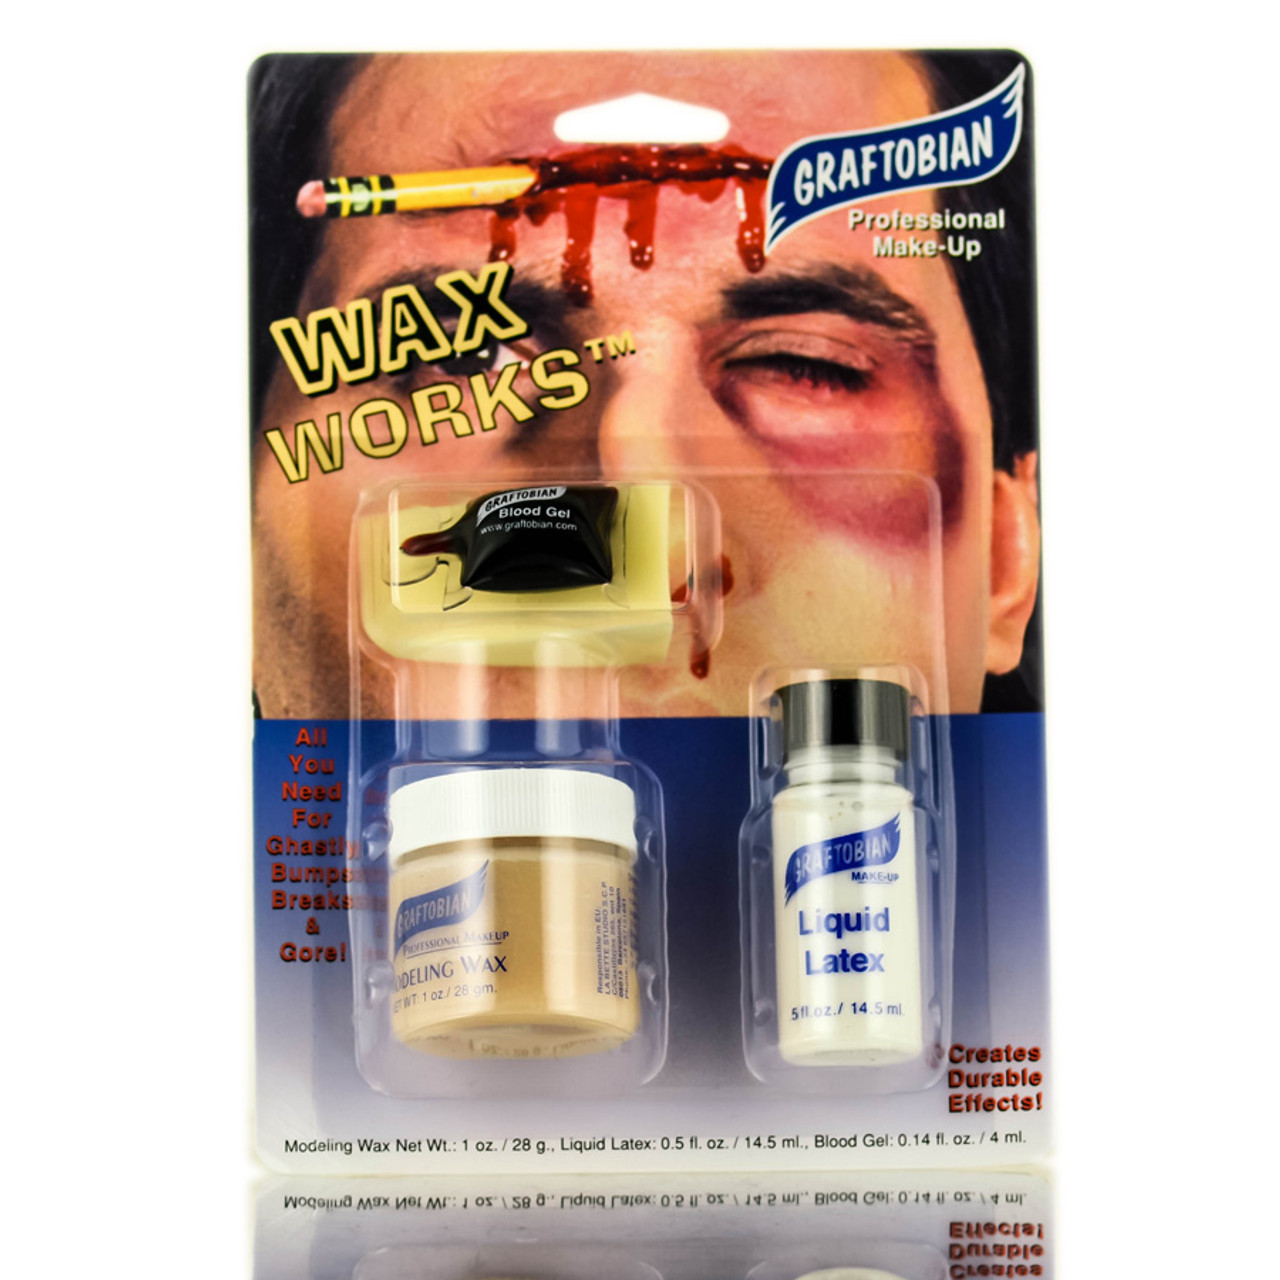 Graftobian Wax Works Set - SleekShop.com (formerly Sleekhair) - Wax ...